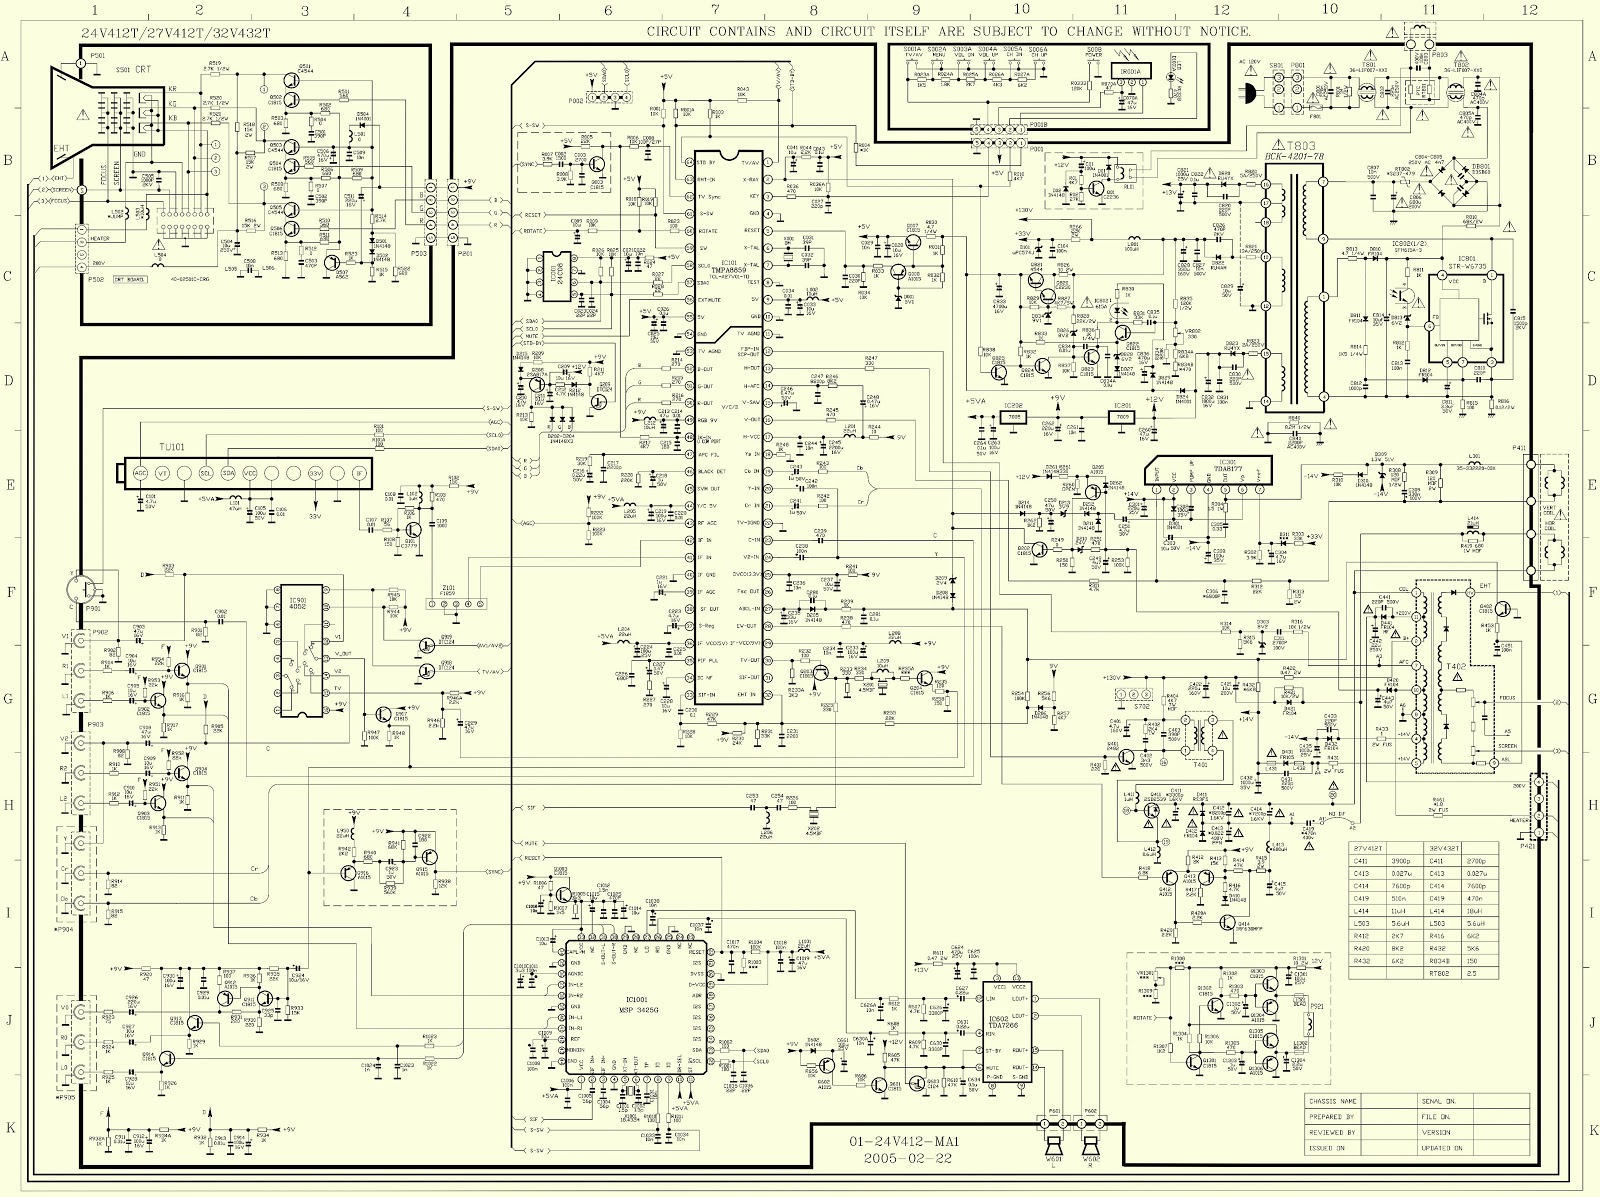 rca tv wiring diagram wiring get image about wiring diagram rca tv wiring diagram rca home wiring diagrams